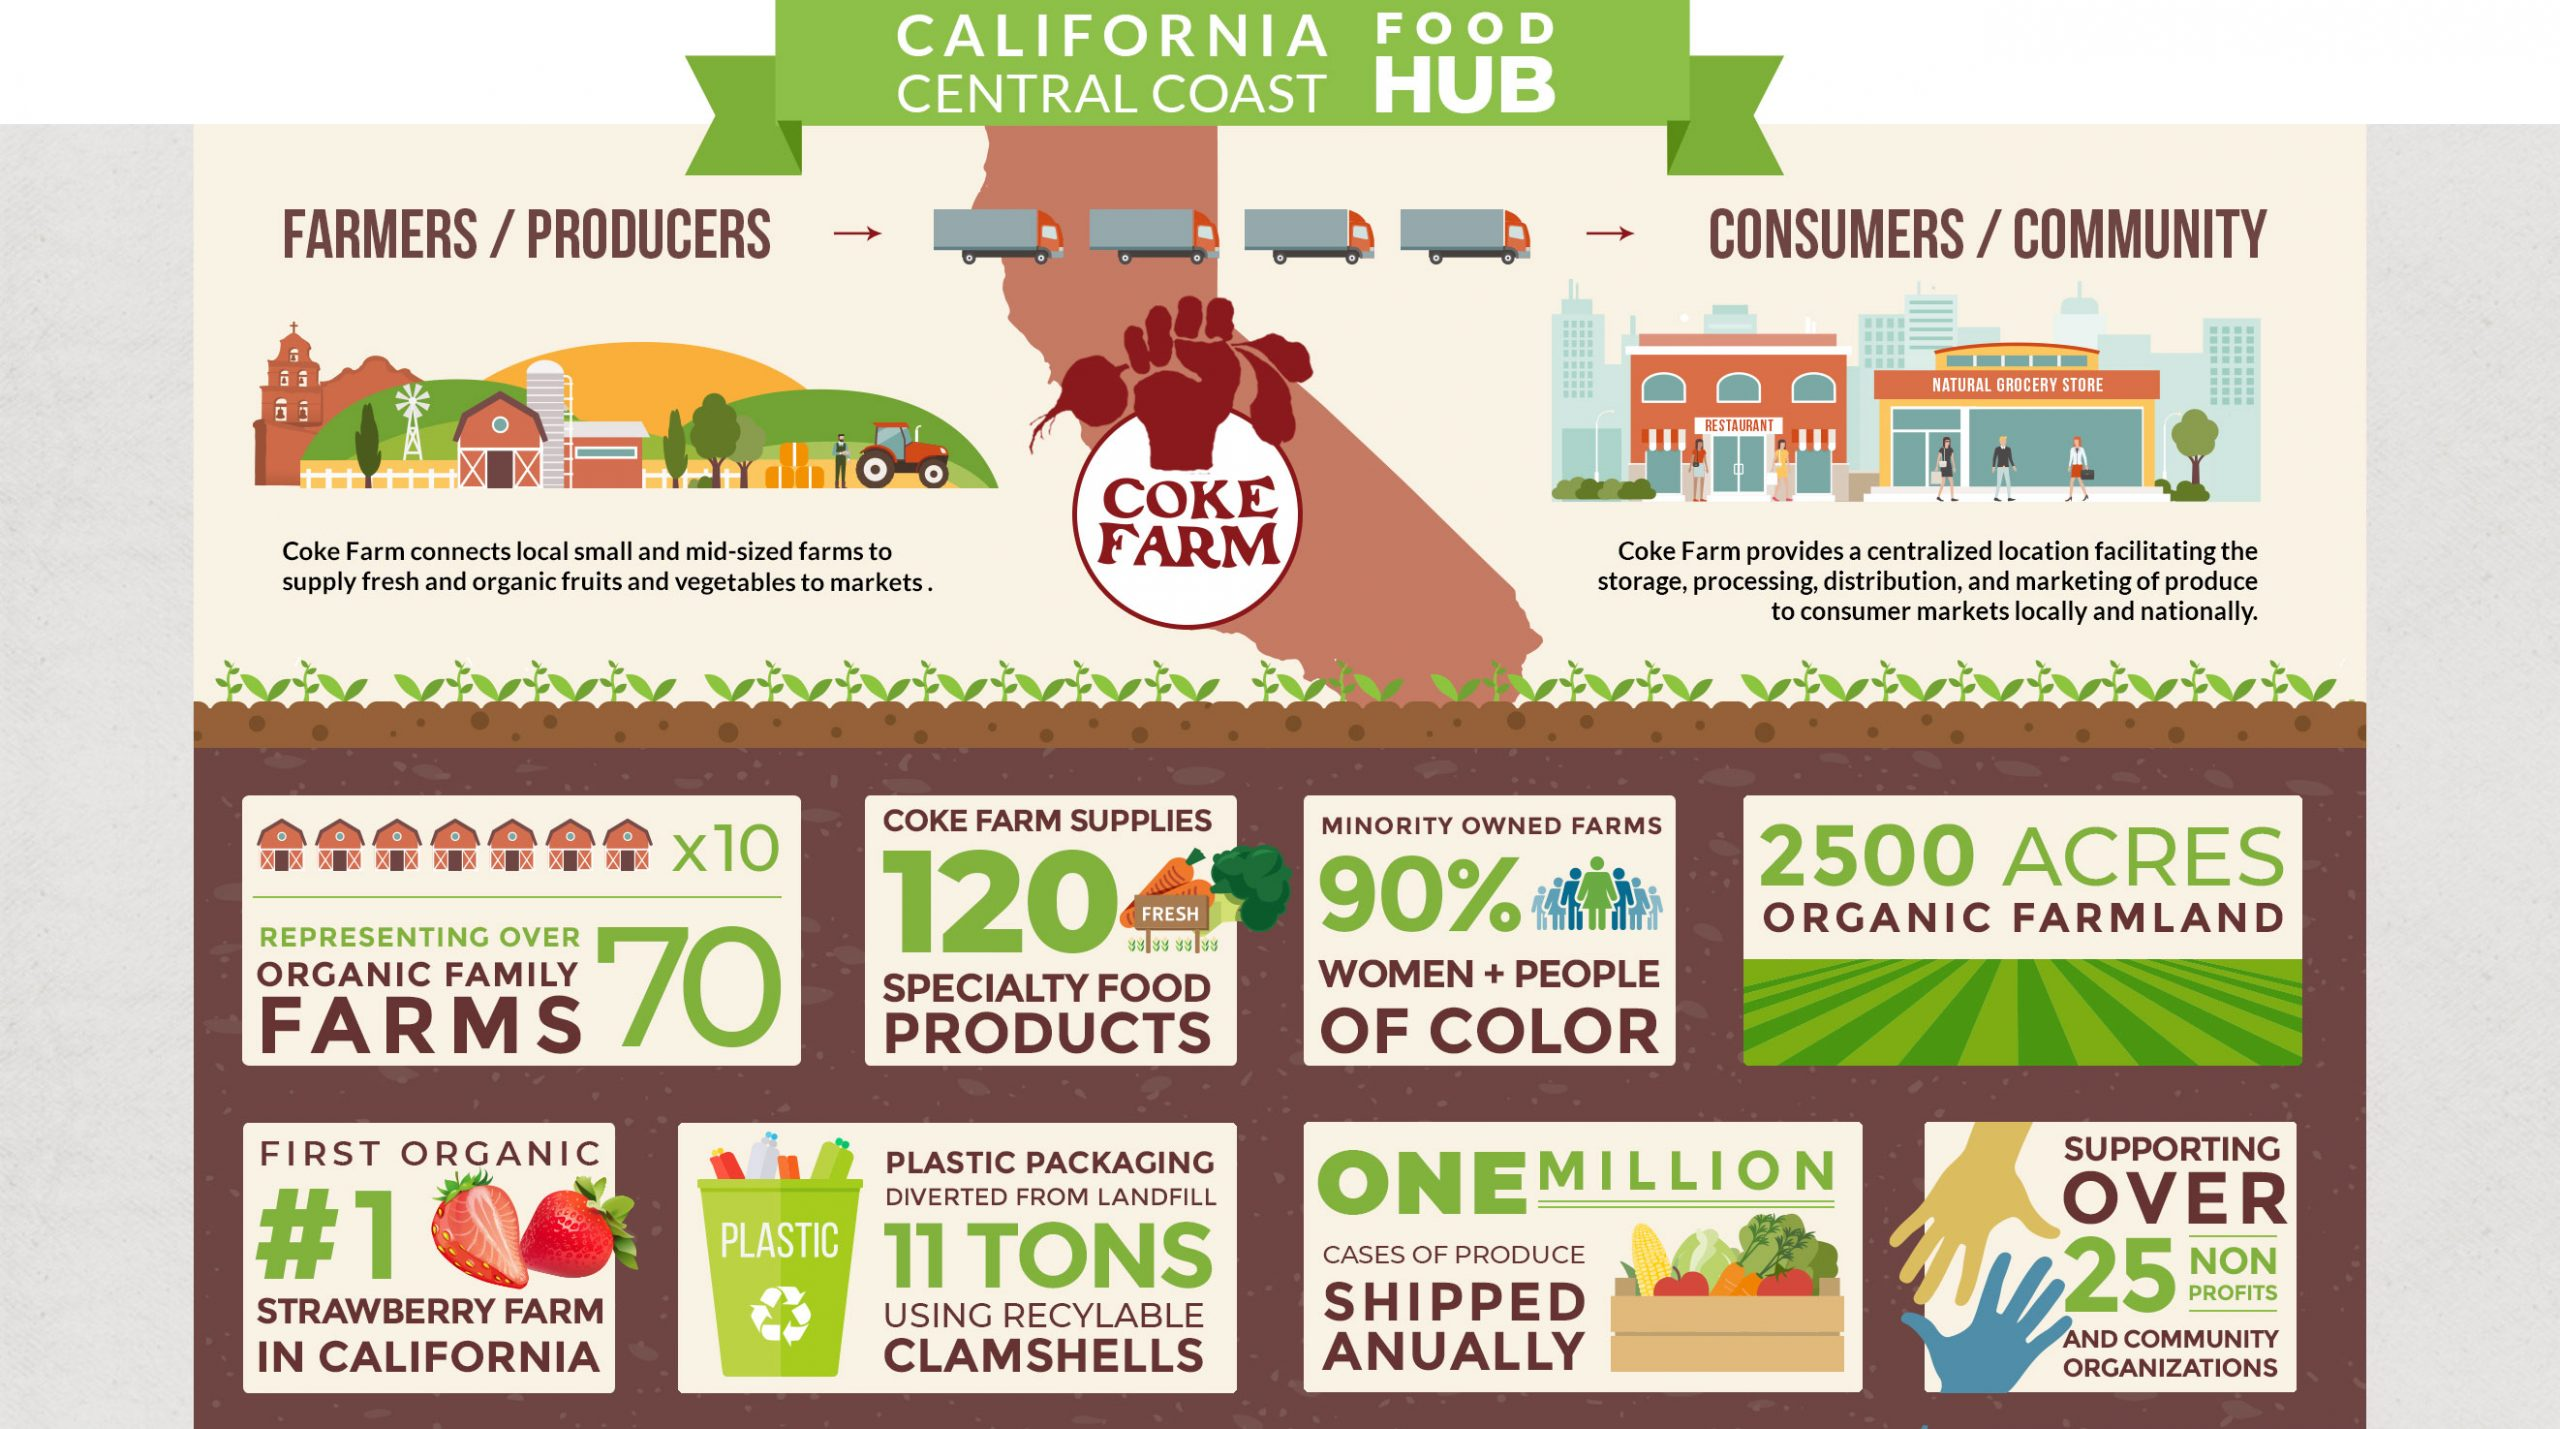 California Central Coast Organic Food Hub